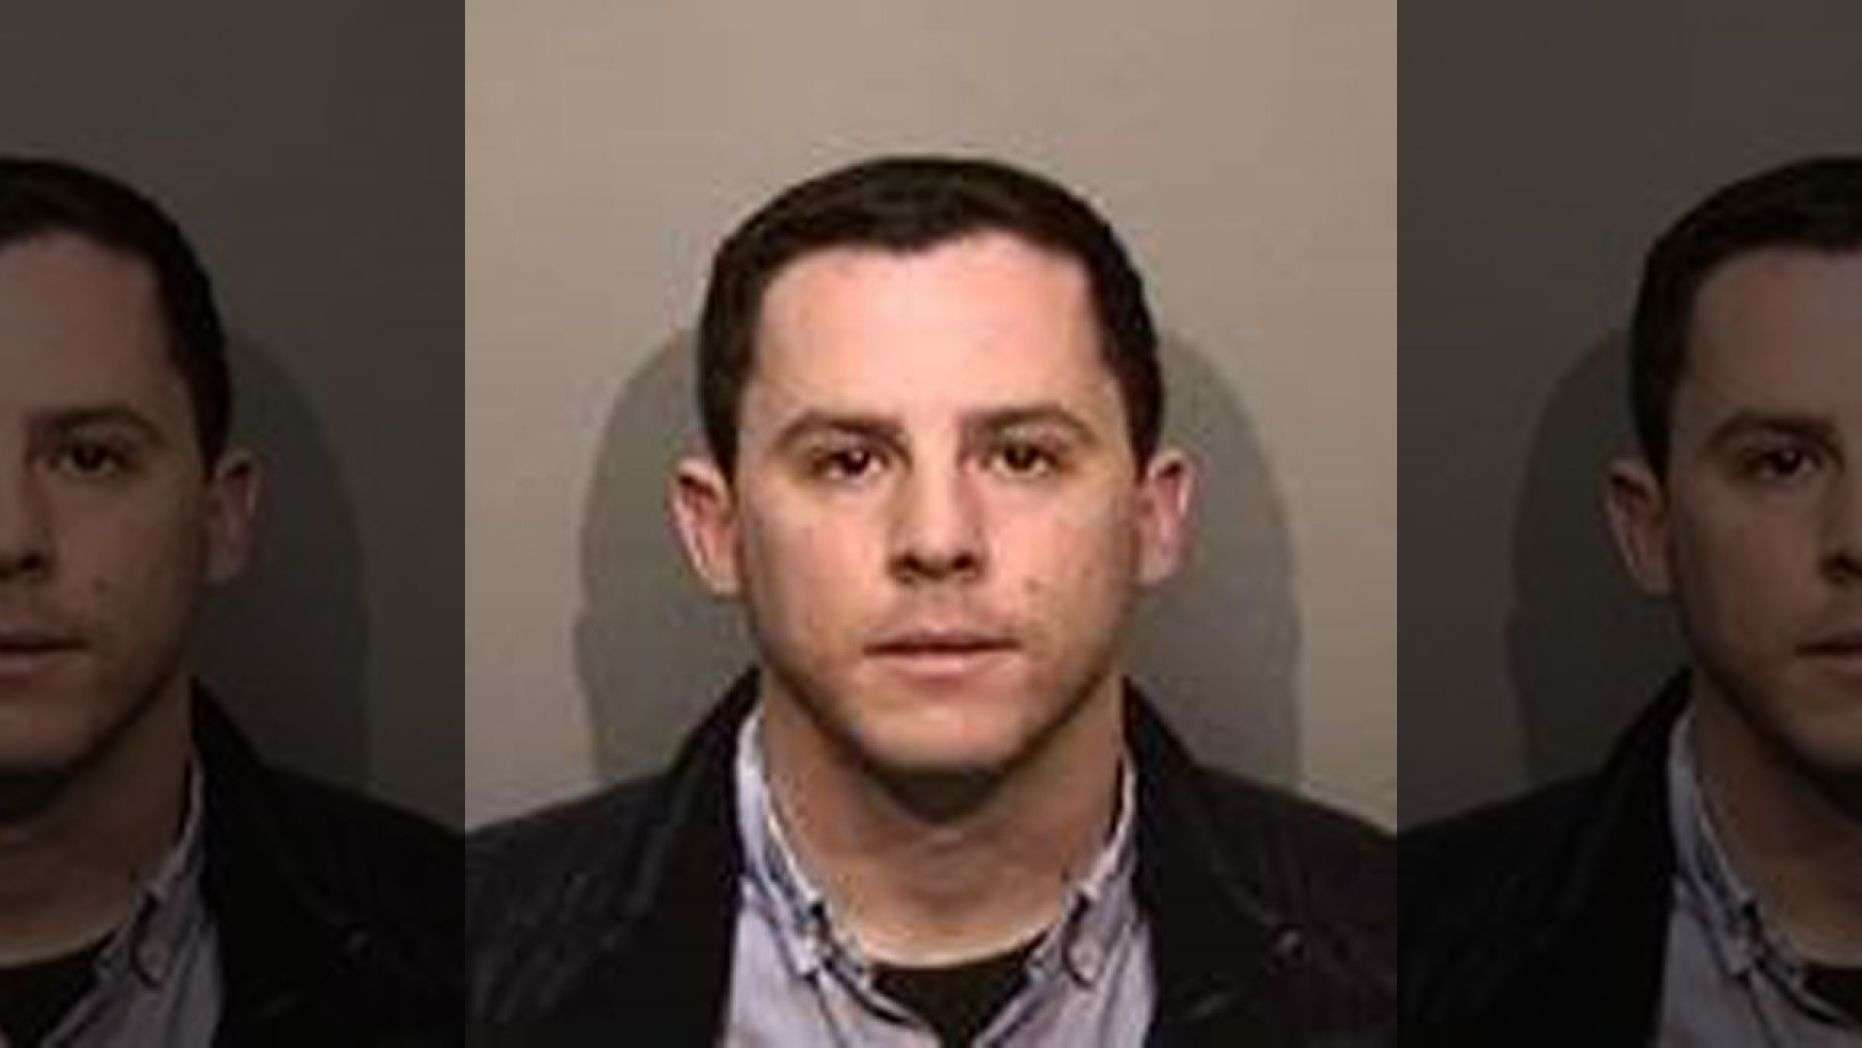 Zachary Greenberg Arrested For Alleged Assault On Conservative Activist At UC Berkeley